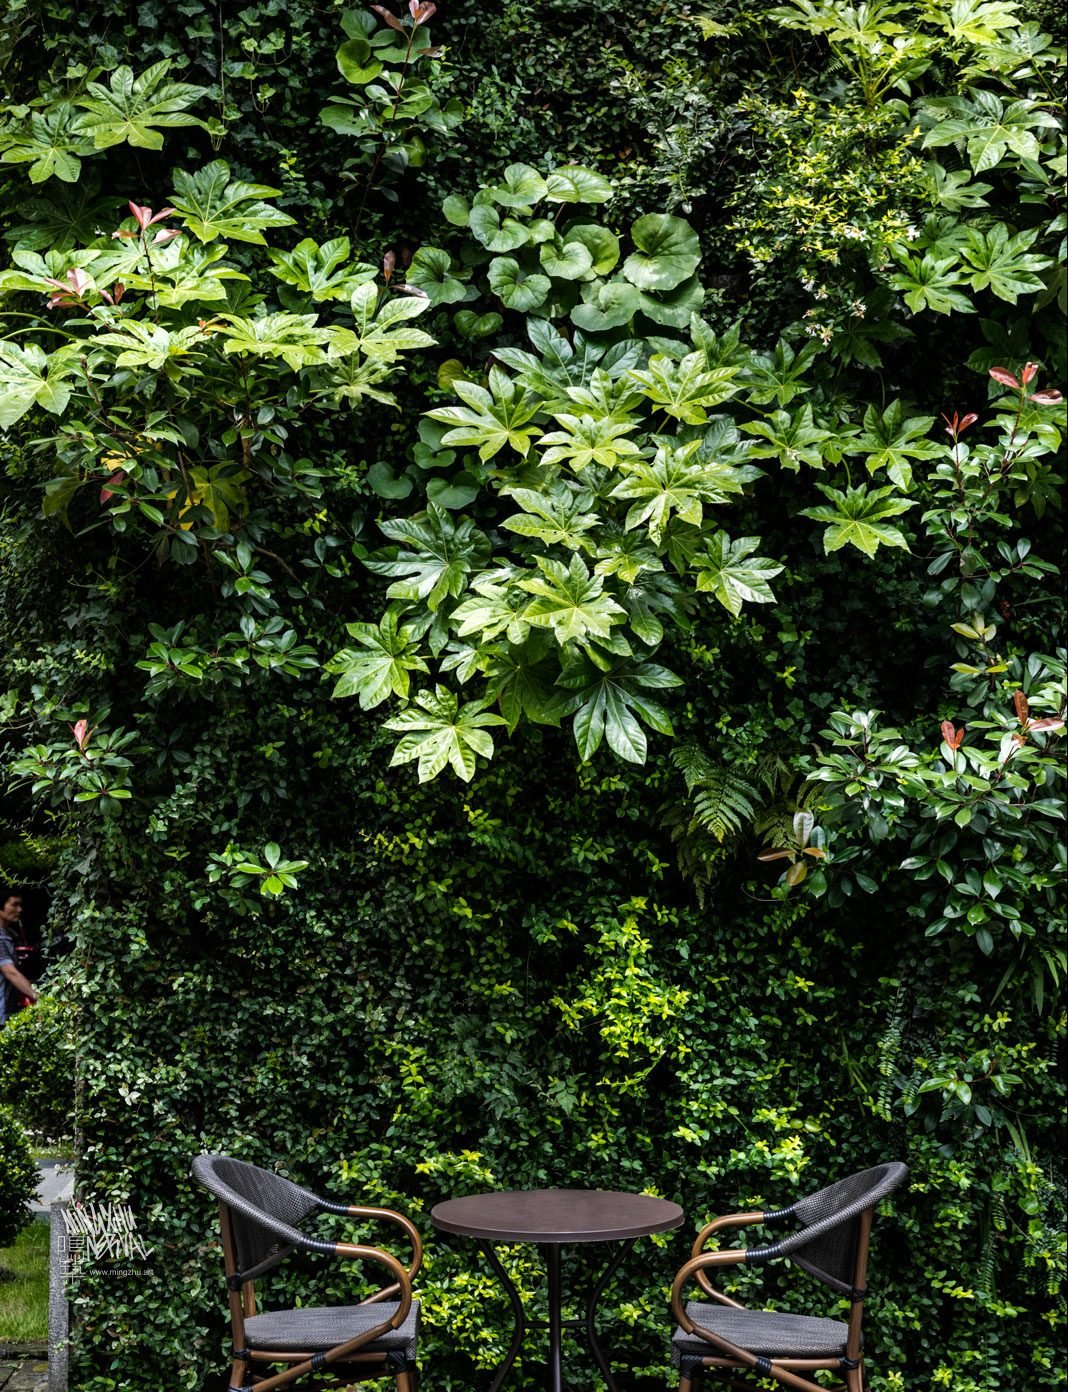 At Mingzhu Nerval, we thrive at creating the most beautiful vertical gardens in the world. For The Mixed Place, we created a wonderful outdoor living wall - Shanghai, 2014.